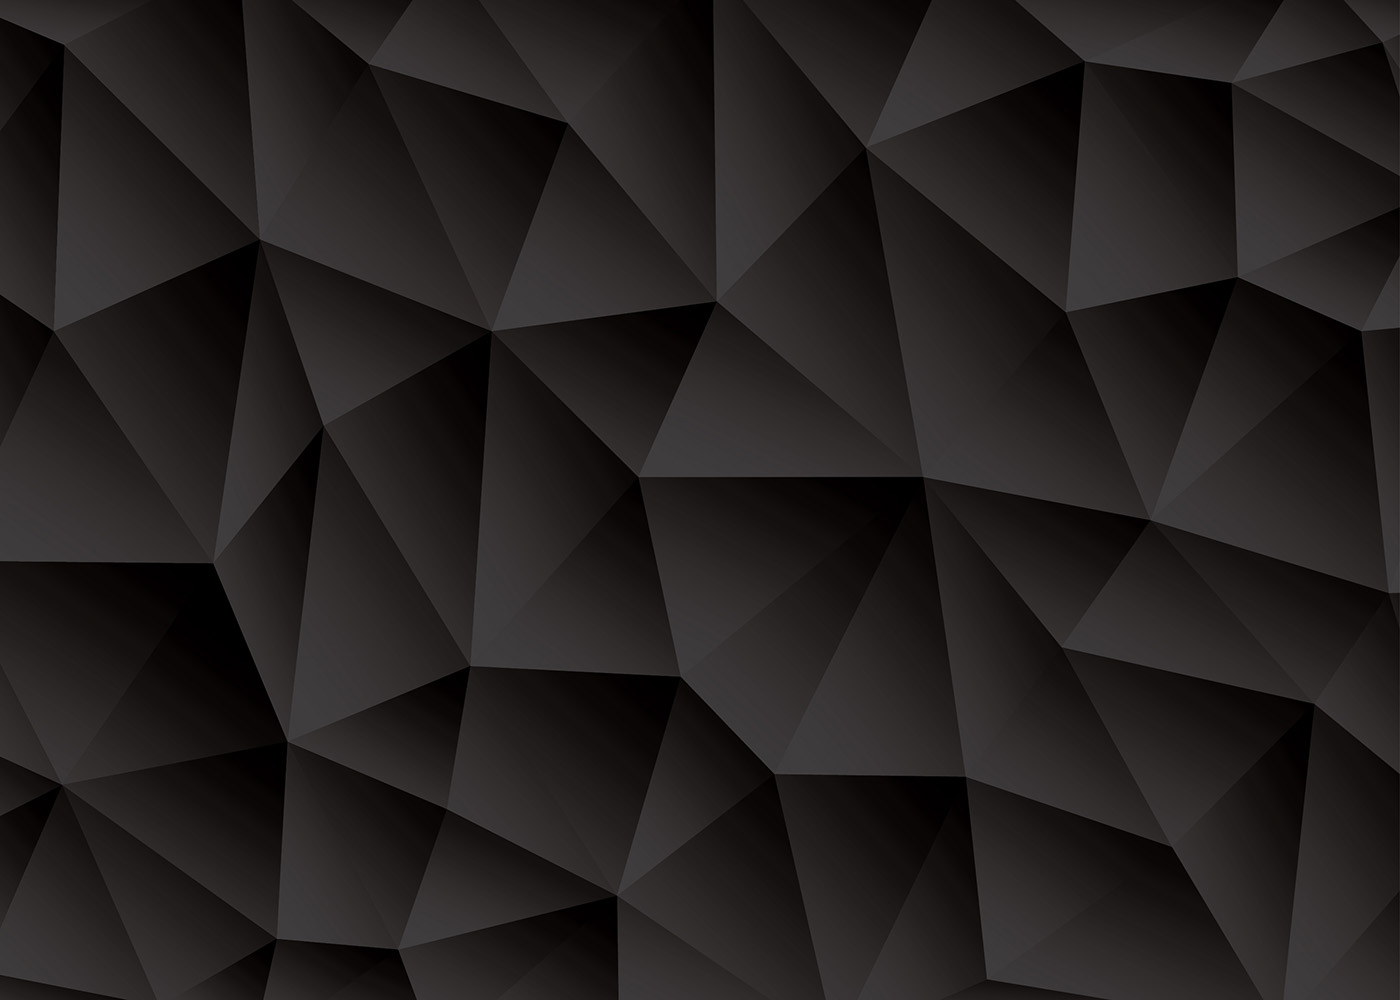 Triangle abstract black background vector download free - Black abstract background ...